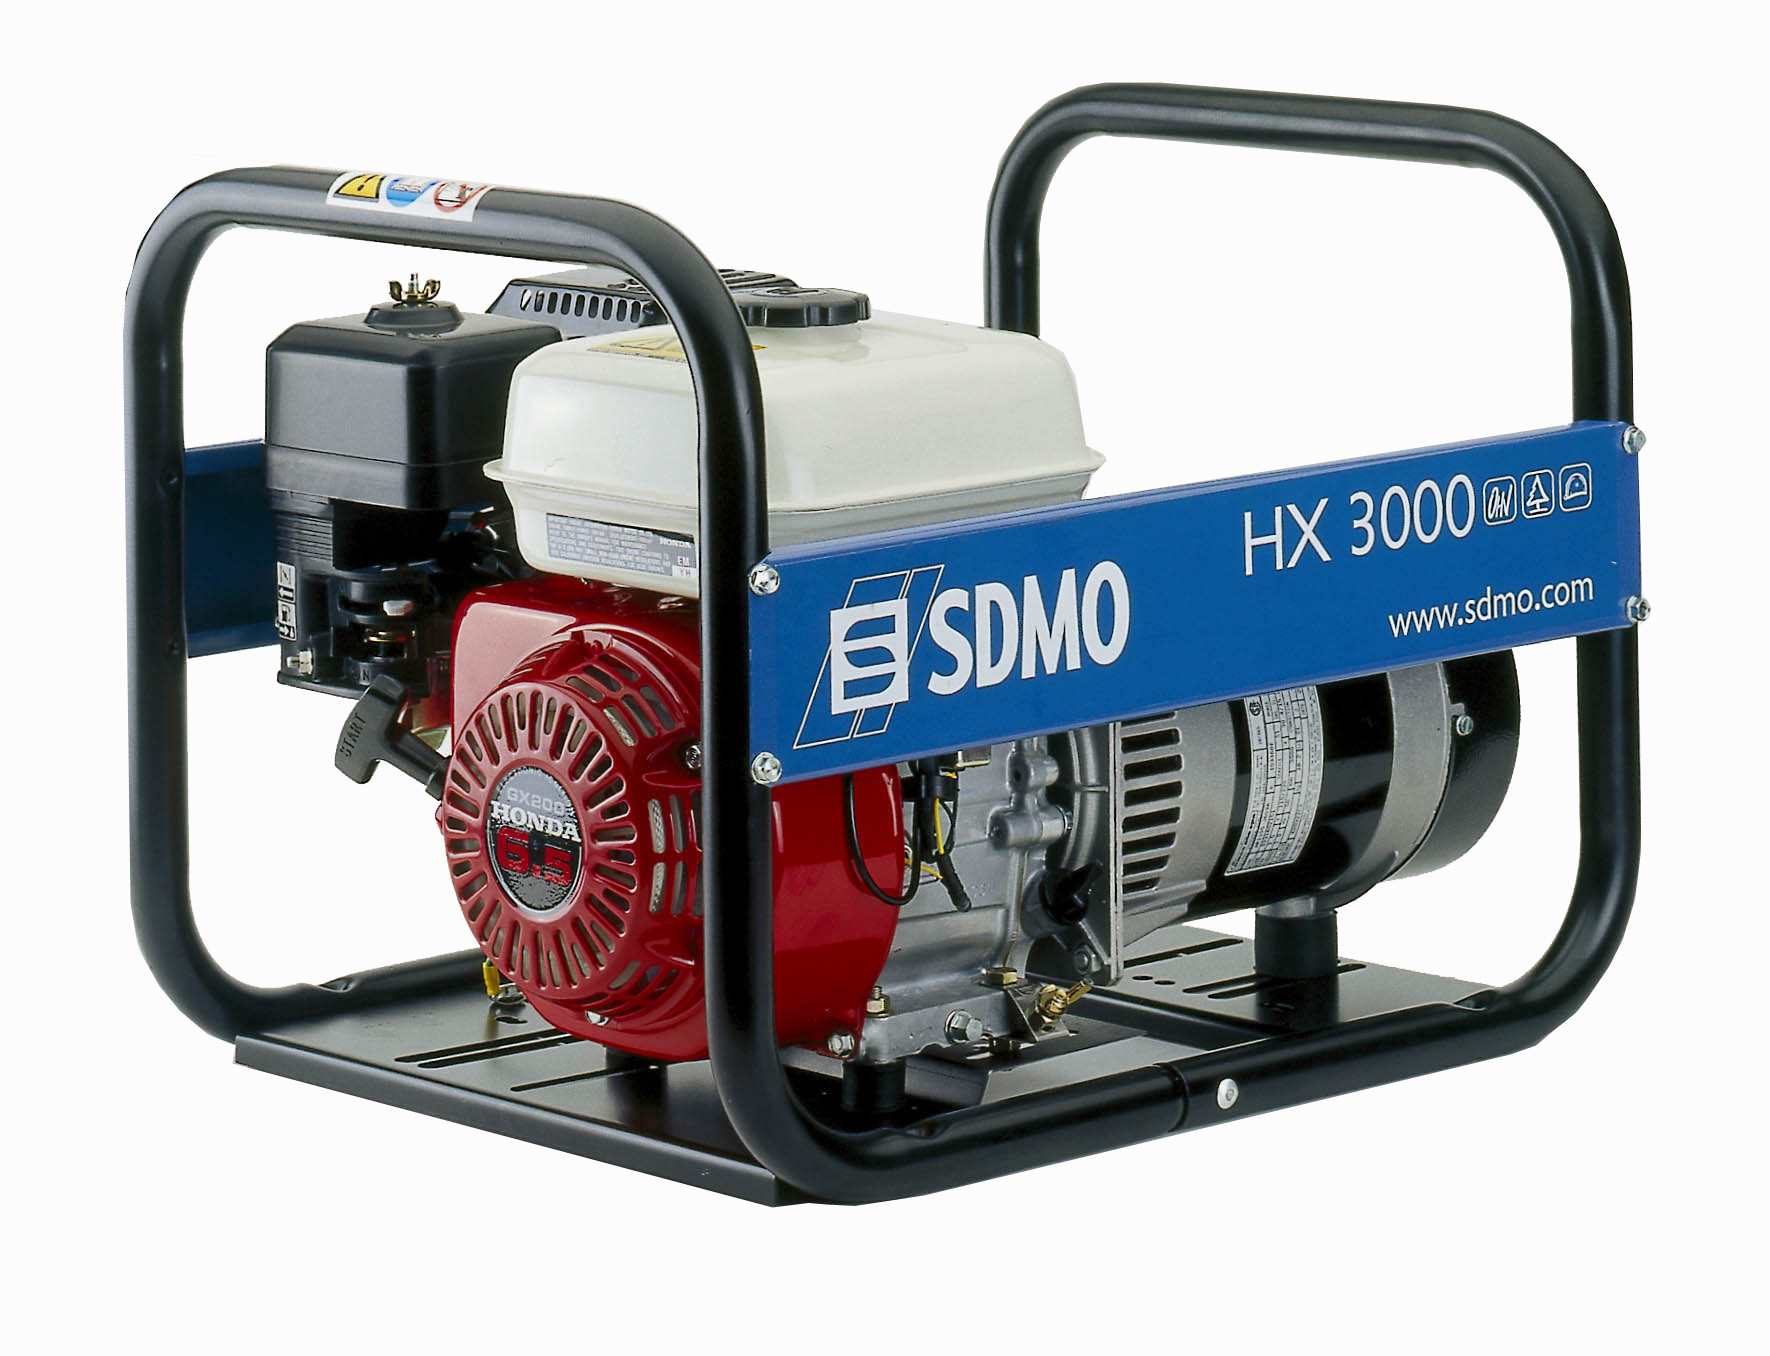 SDMO Portable Power HX3000